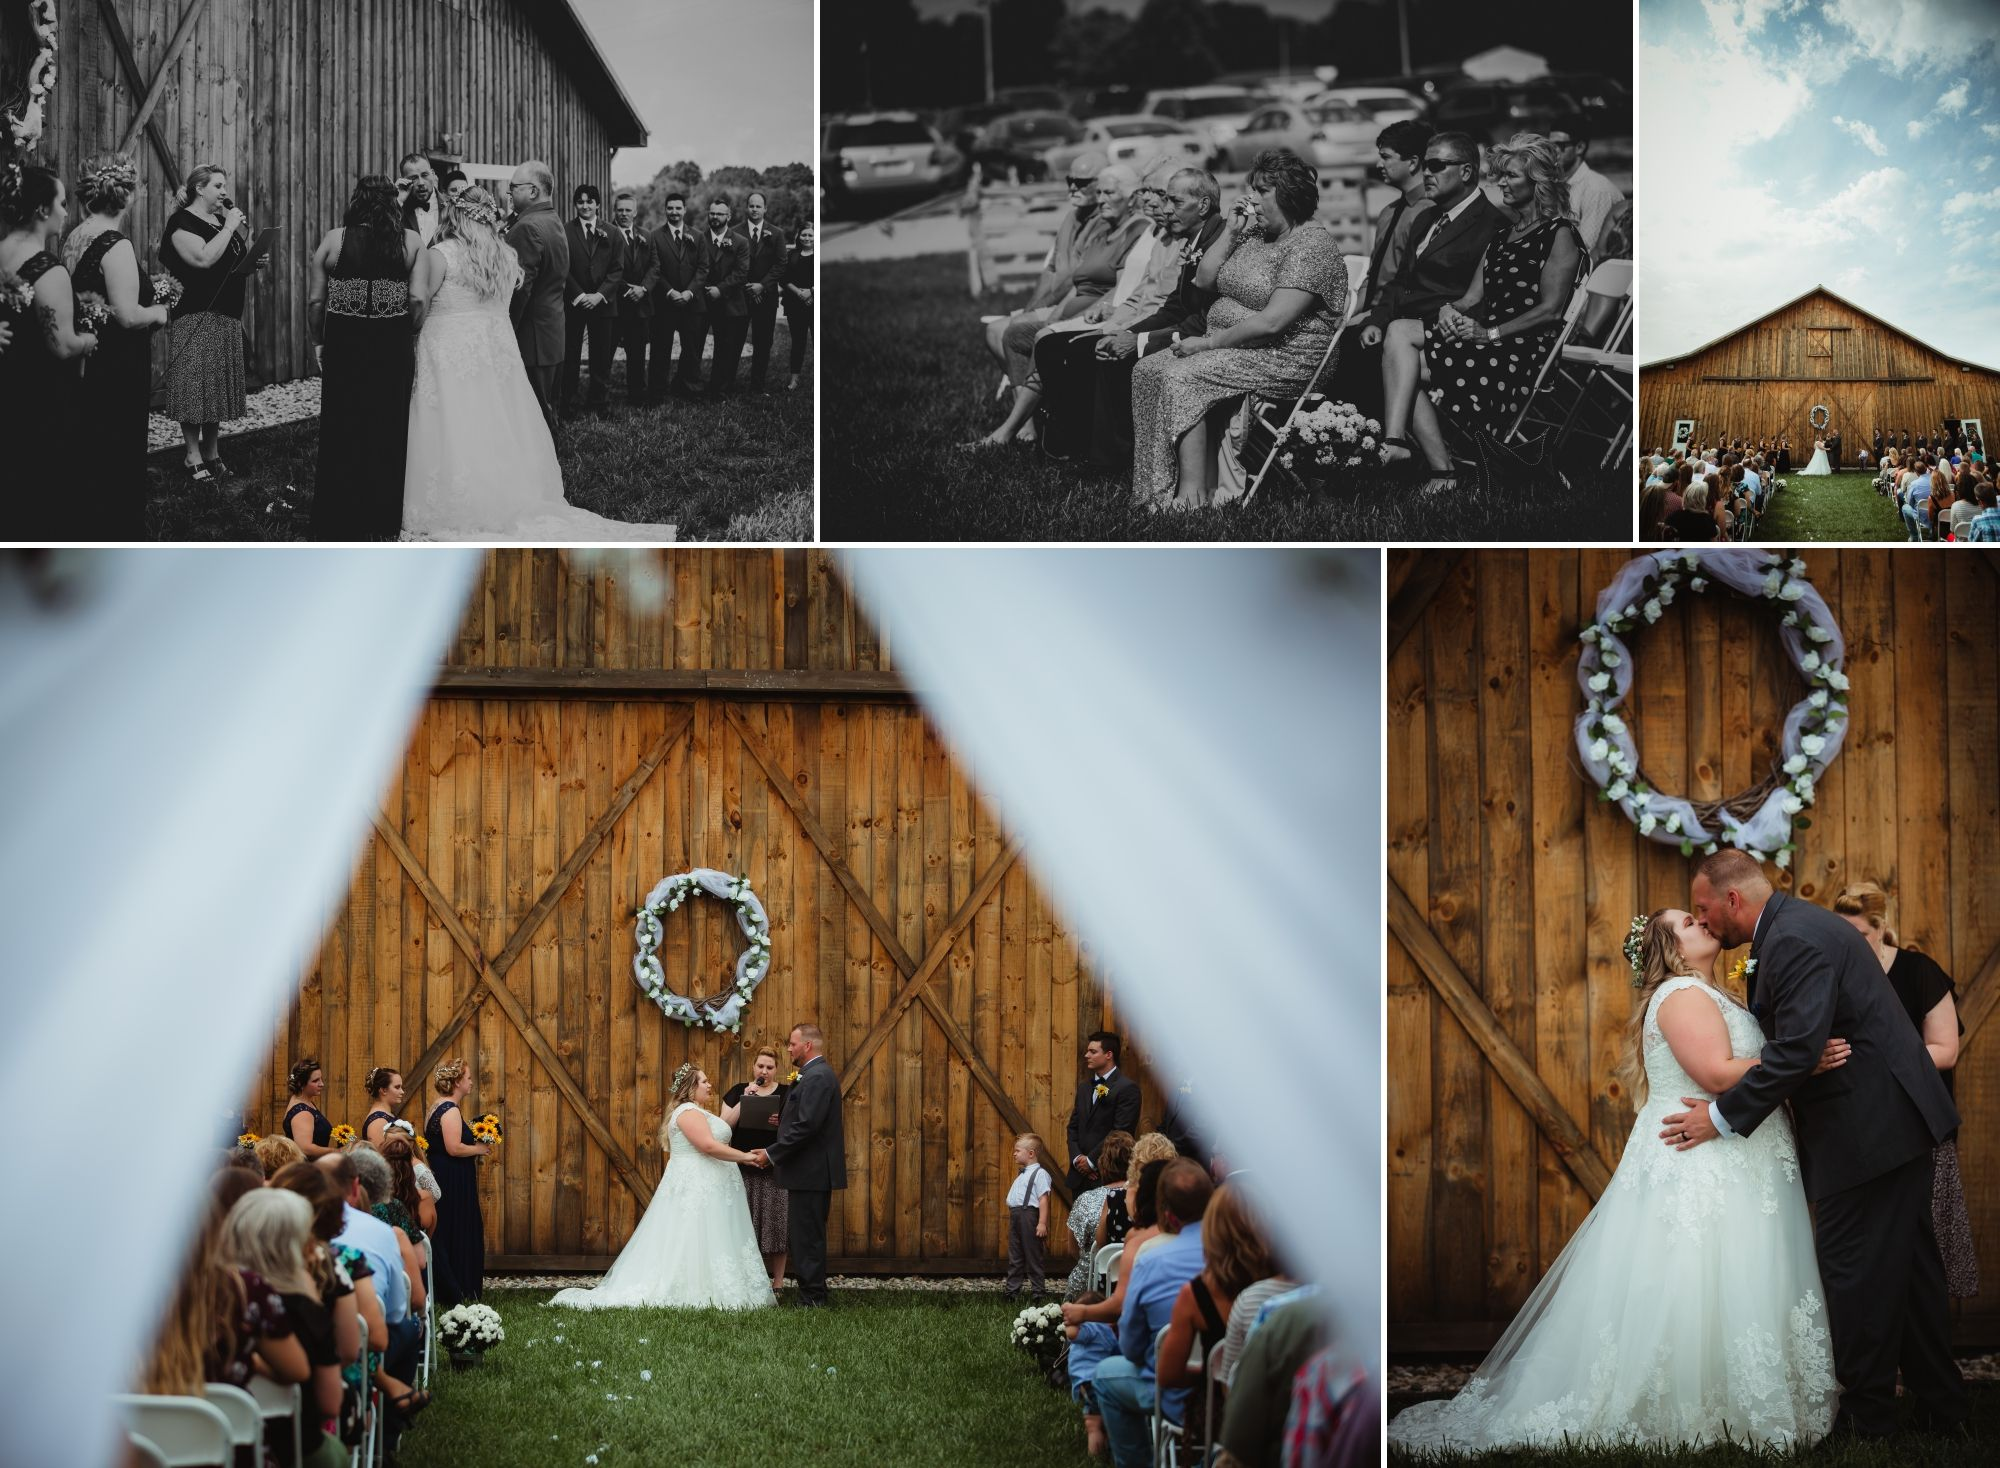 Collage of the bride and groom's outdoor ceremony in front of the barn.